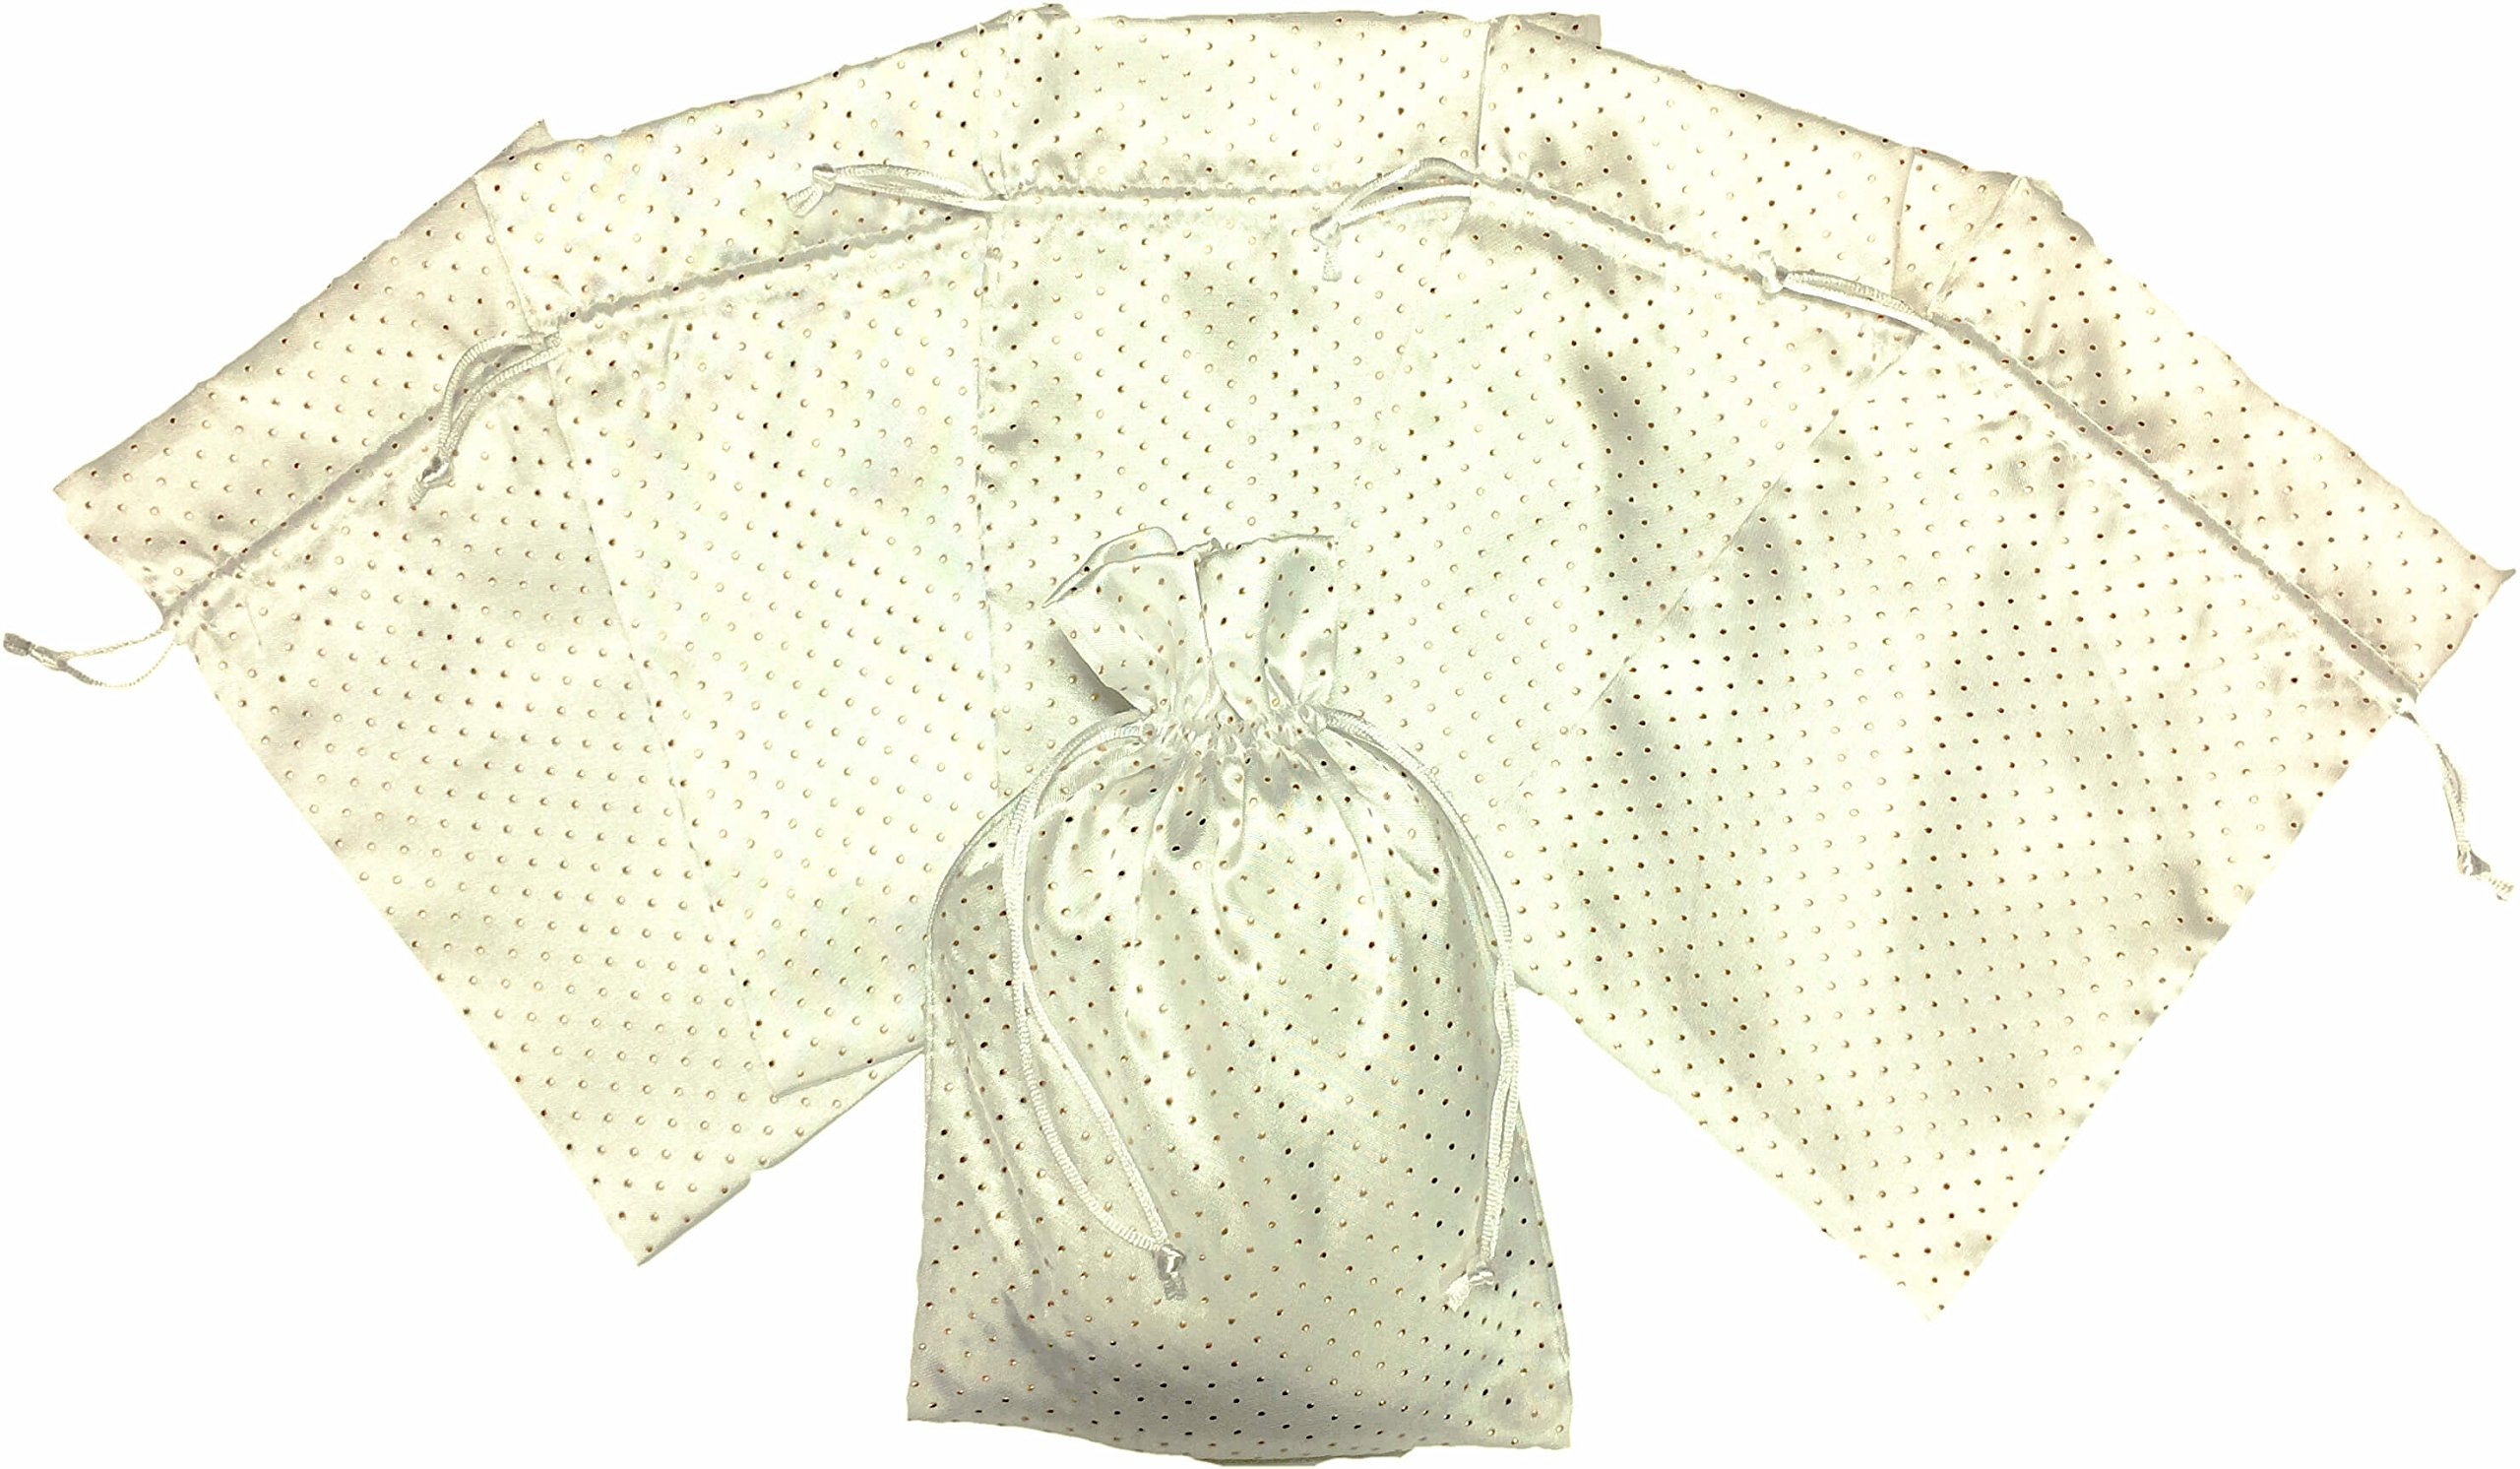 White Satin Pearl Gift Bag with Gold Encrusted Dots by Bruno Life - 6 Count 6 x 9 inch Drawstring Tie for Wedding Favors, Money Dance, Bridesmaid Gifts, Shower, Anniversary, Organizer, Includes eBook